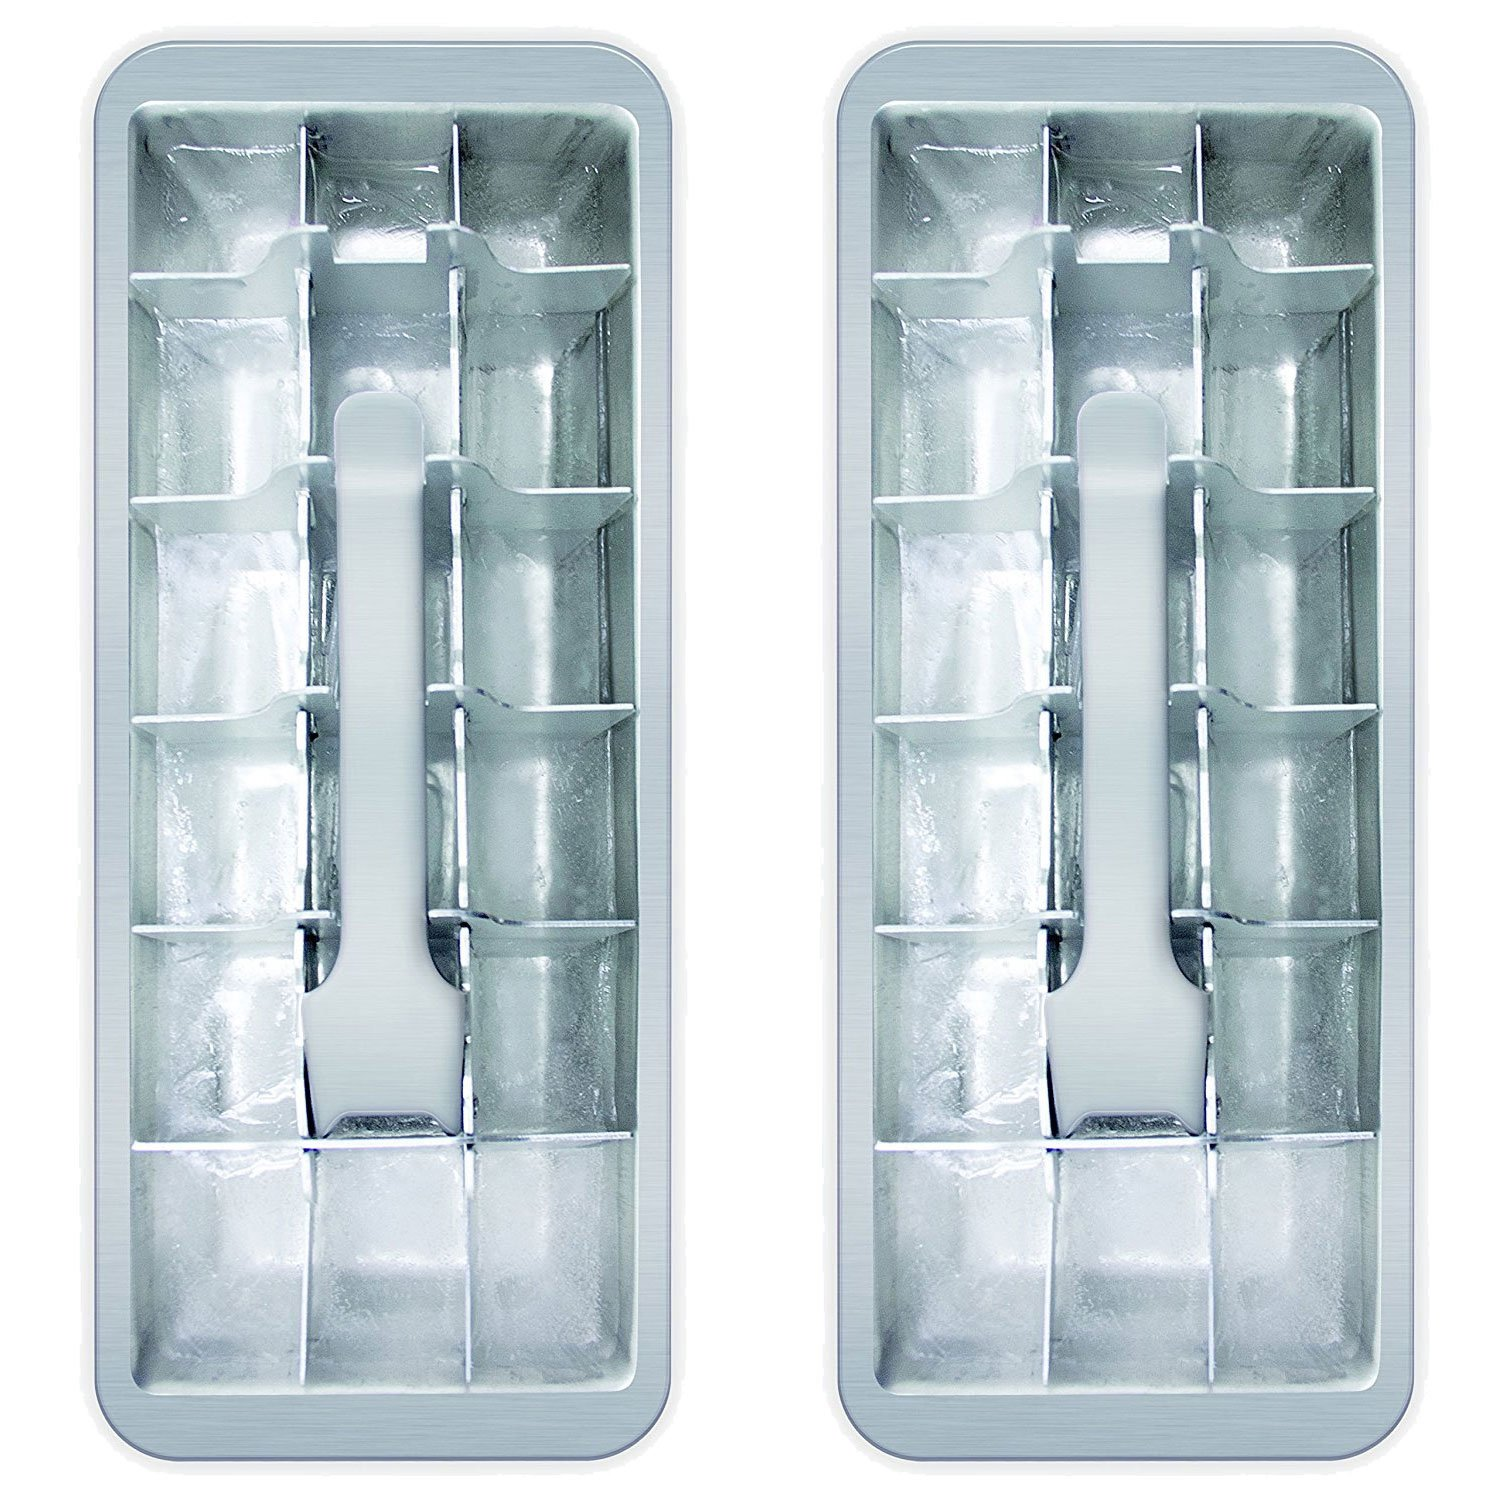 18 Cube Vintage Kitchen Ice Tray 2 Pack Metal Divider Trays With ...